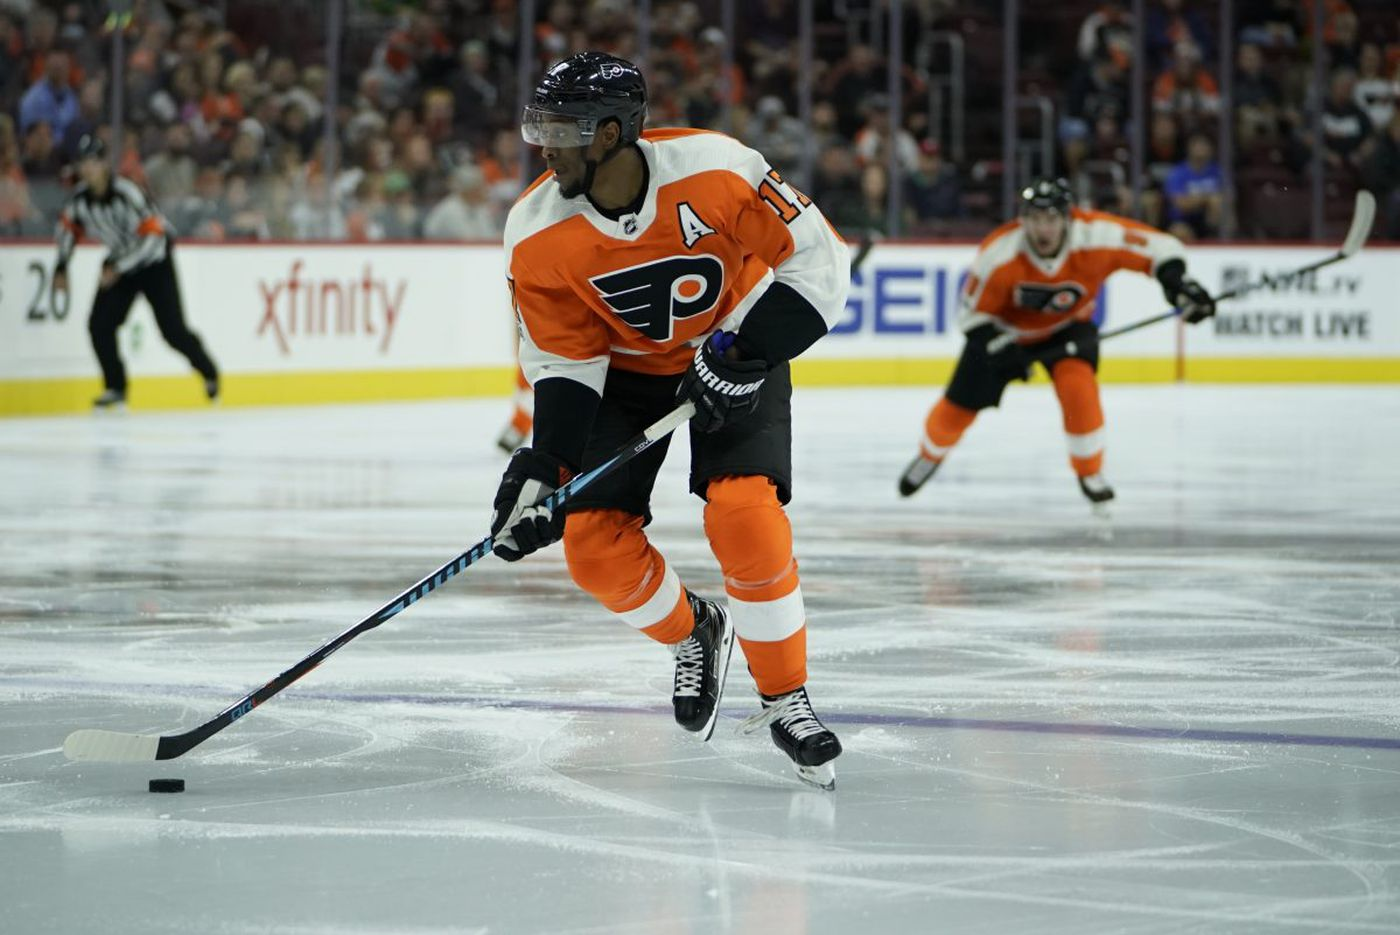 A look at the Flyers' roster